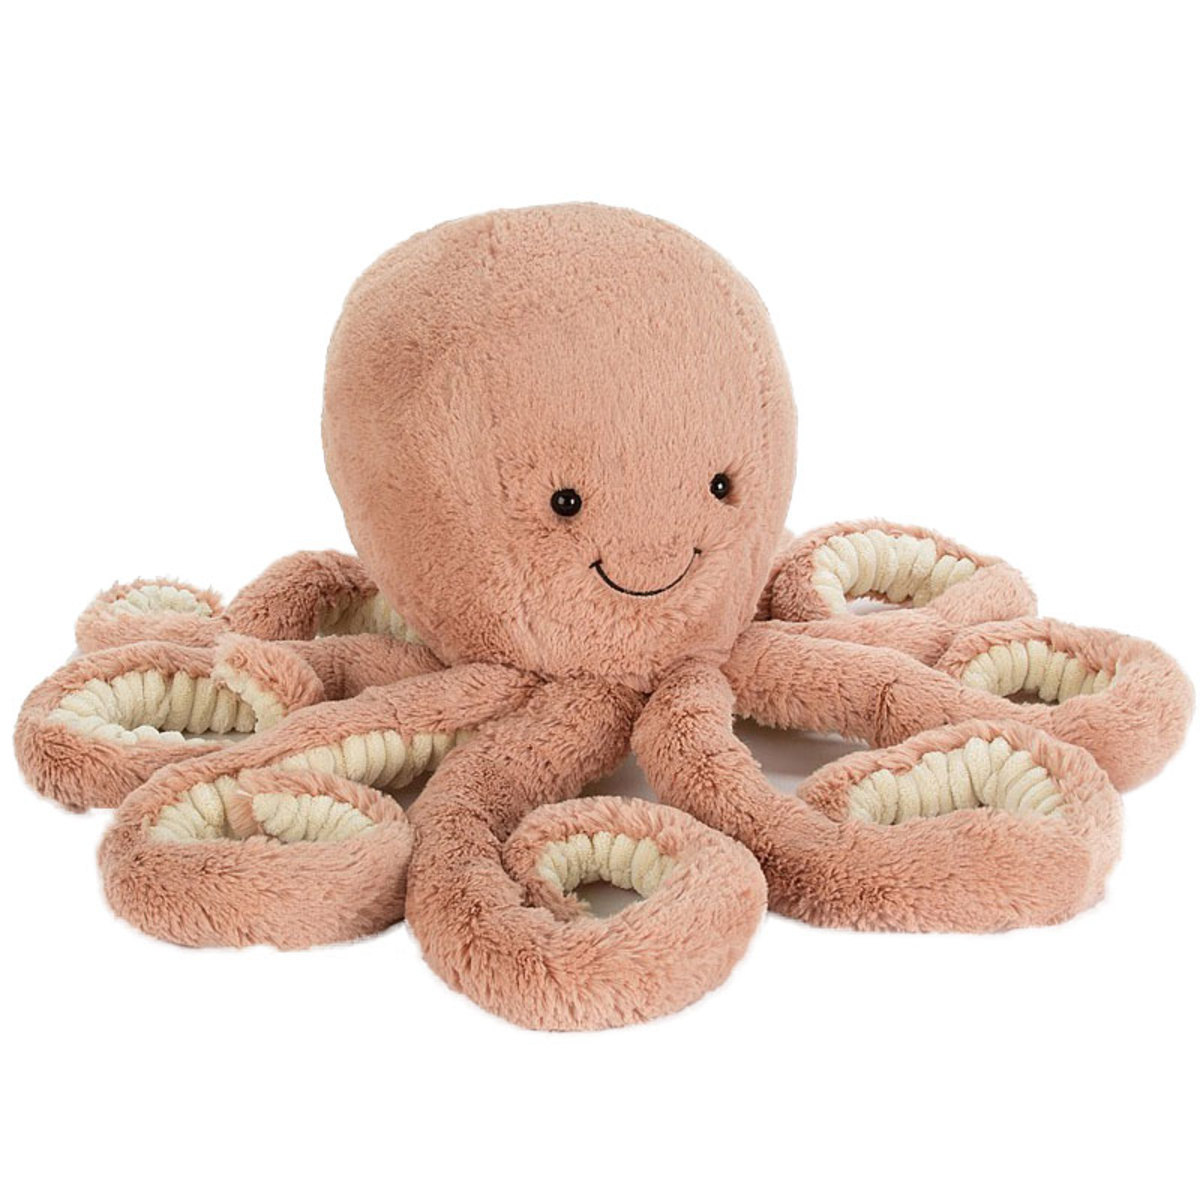 Peluche Peluche Odell Octopus - Small Peluche Odell Octopus - Small